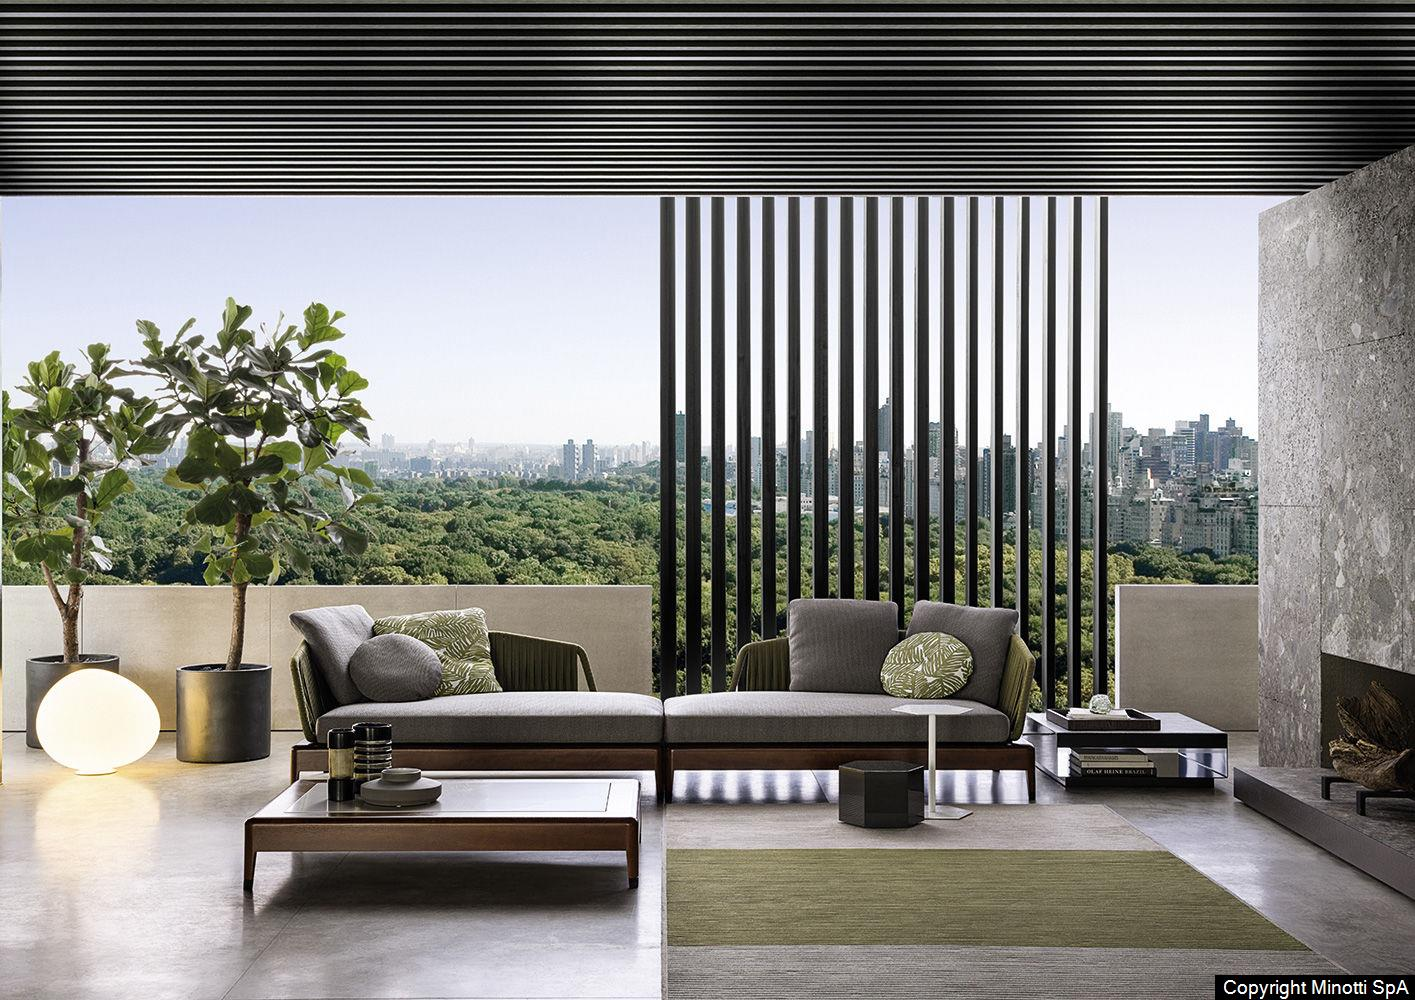 minotti outdoor möbel